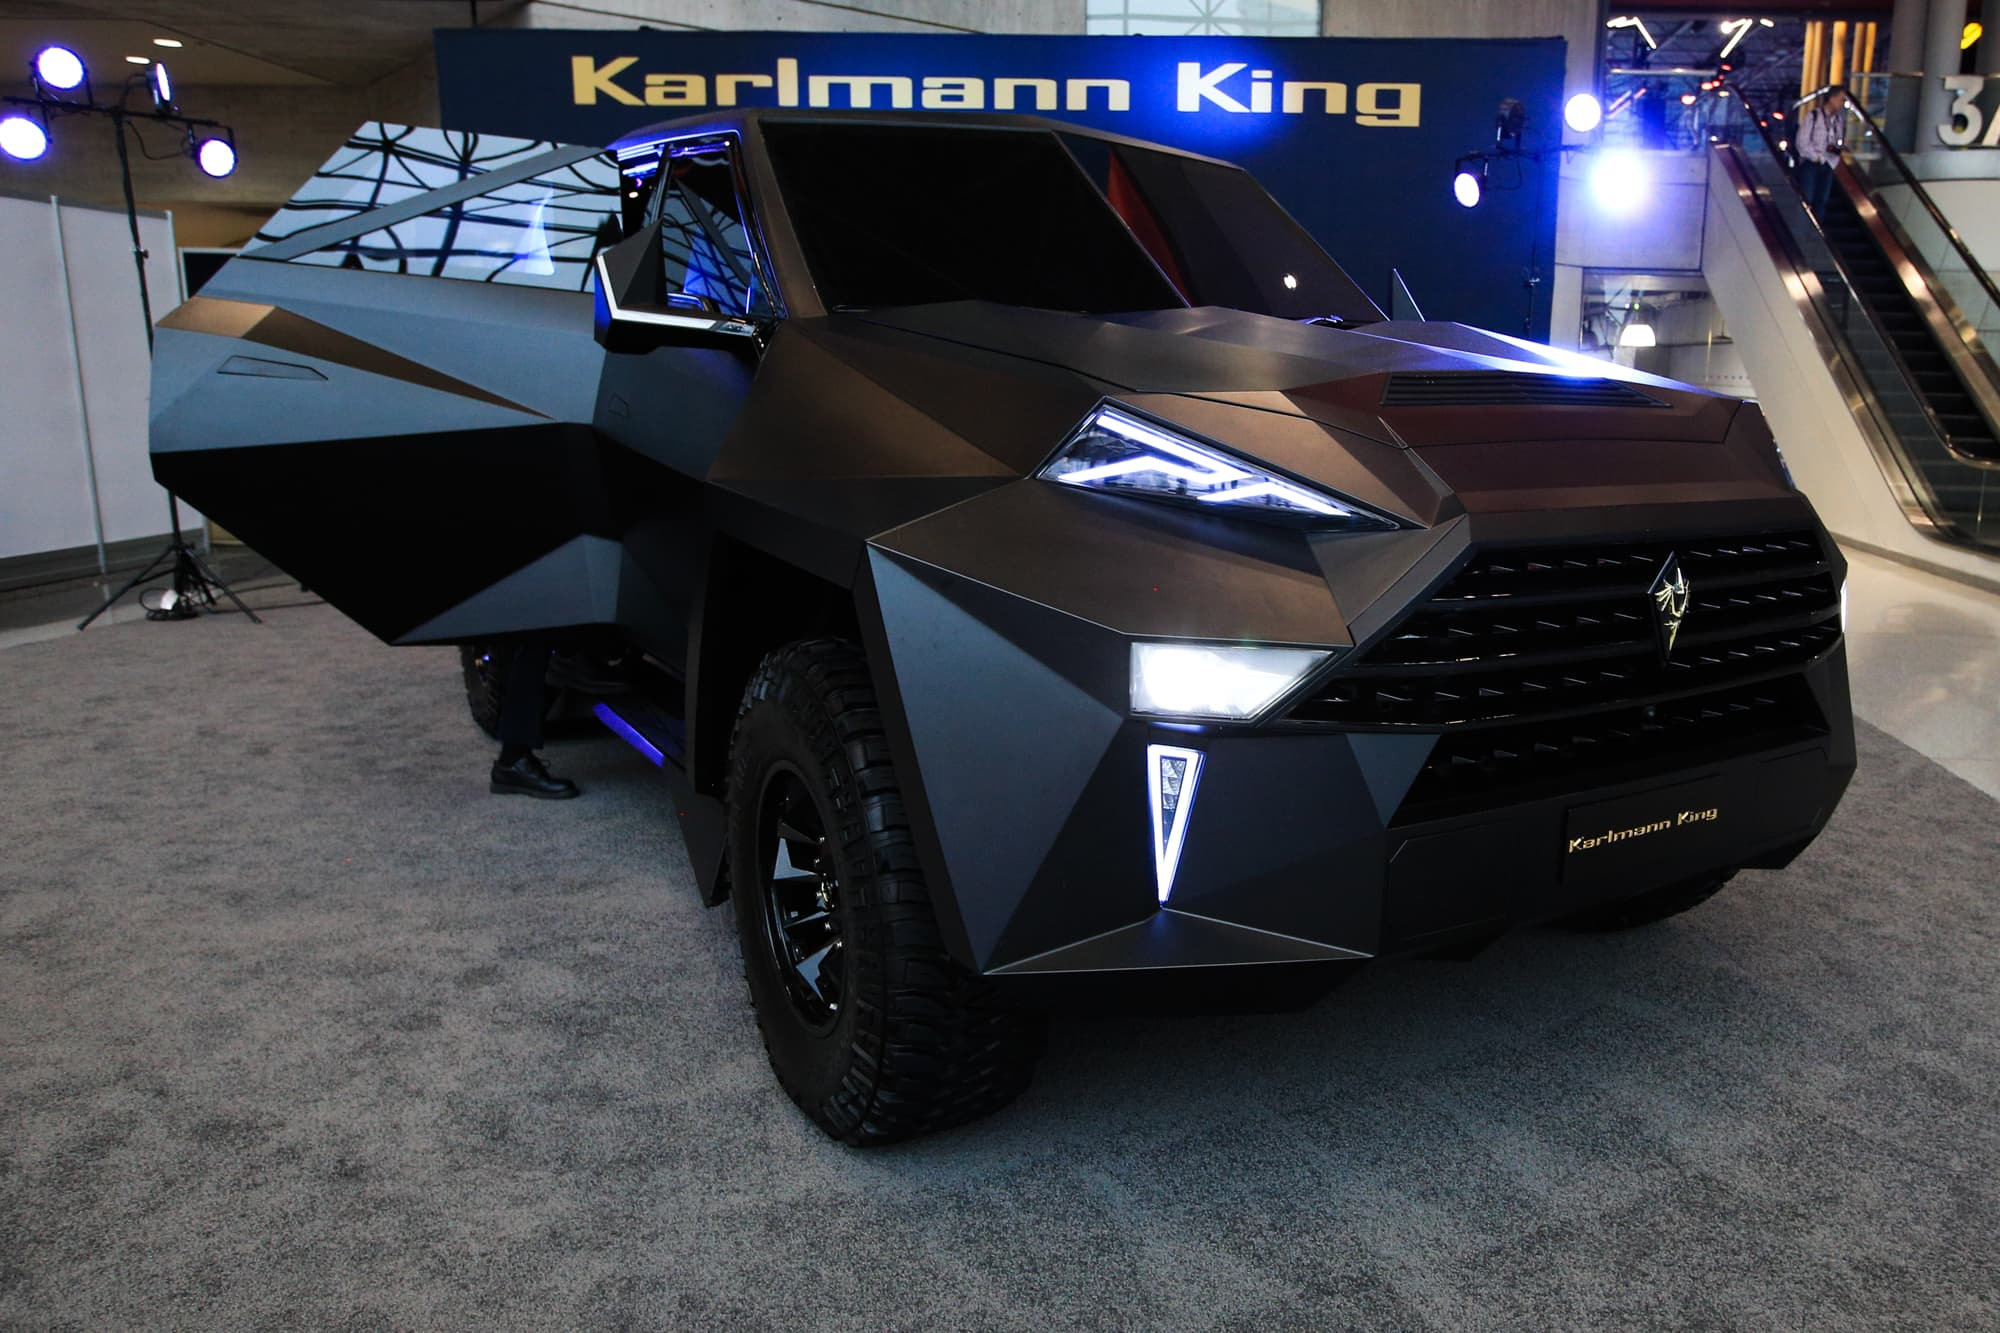 Take a look at the most expensive SUV in the world: the $1.9 million Karlmann King